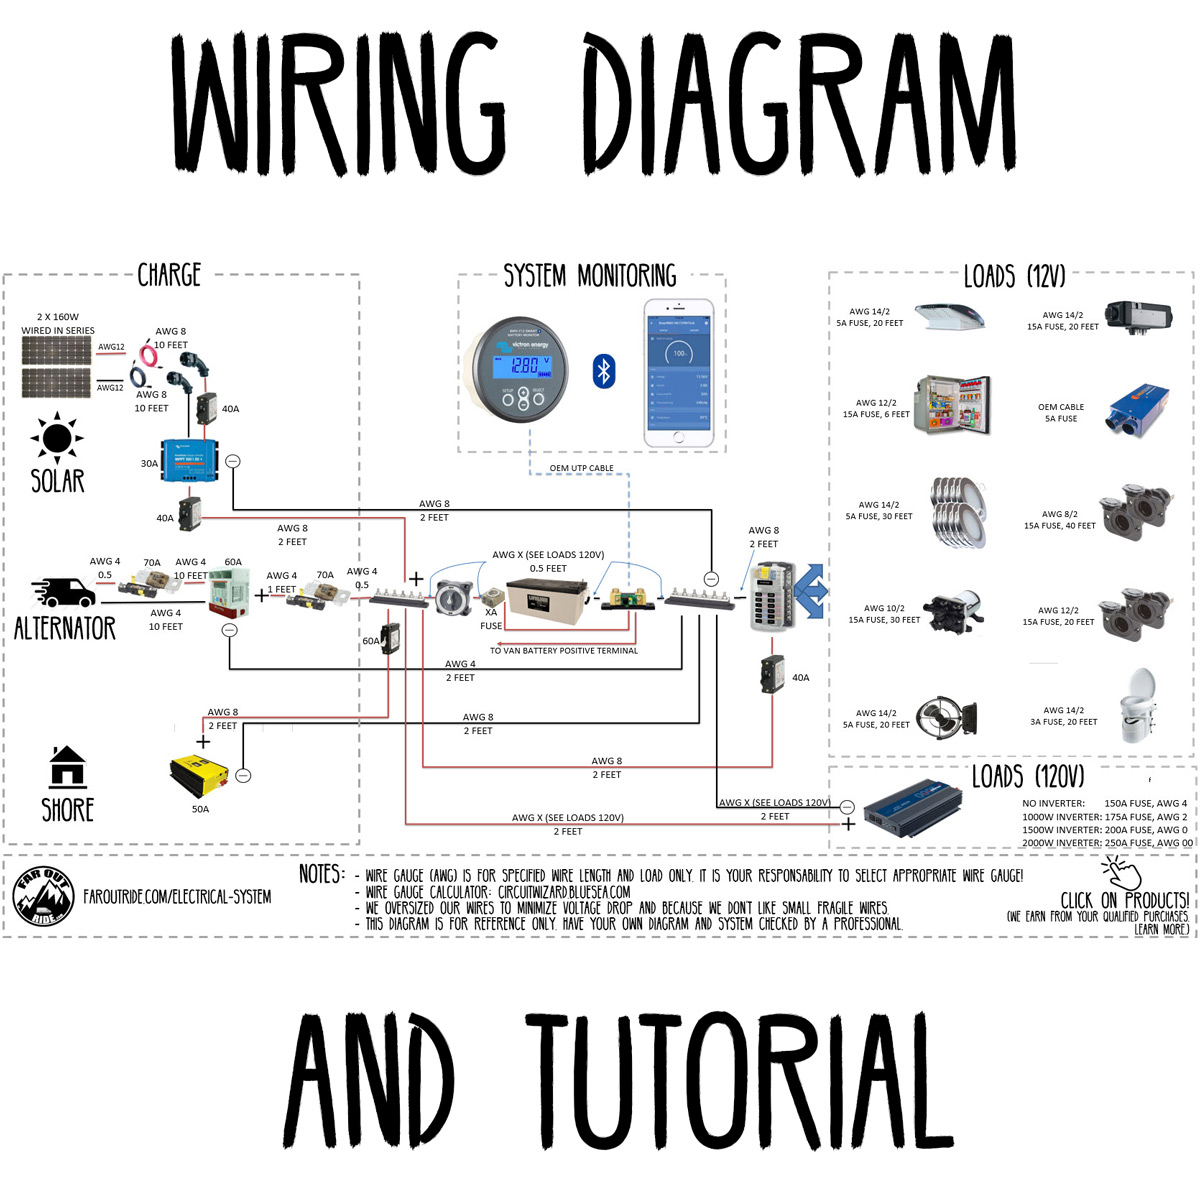 wiring diagram tutorial faroutride rh faroutride com the wiring diagram for a 1989 chevy suburban the wiring diagram of a soundsphere 110a